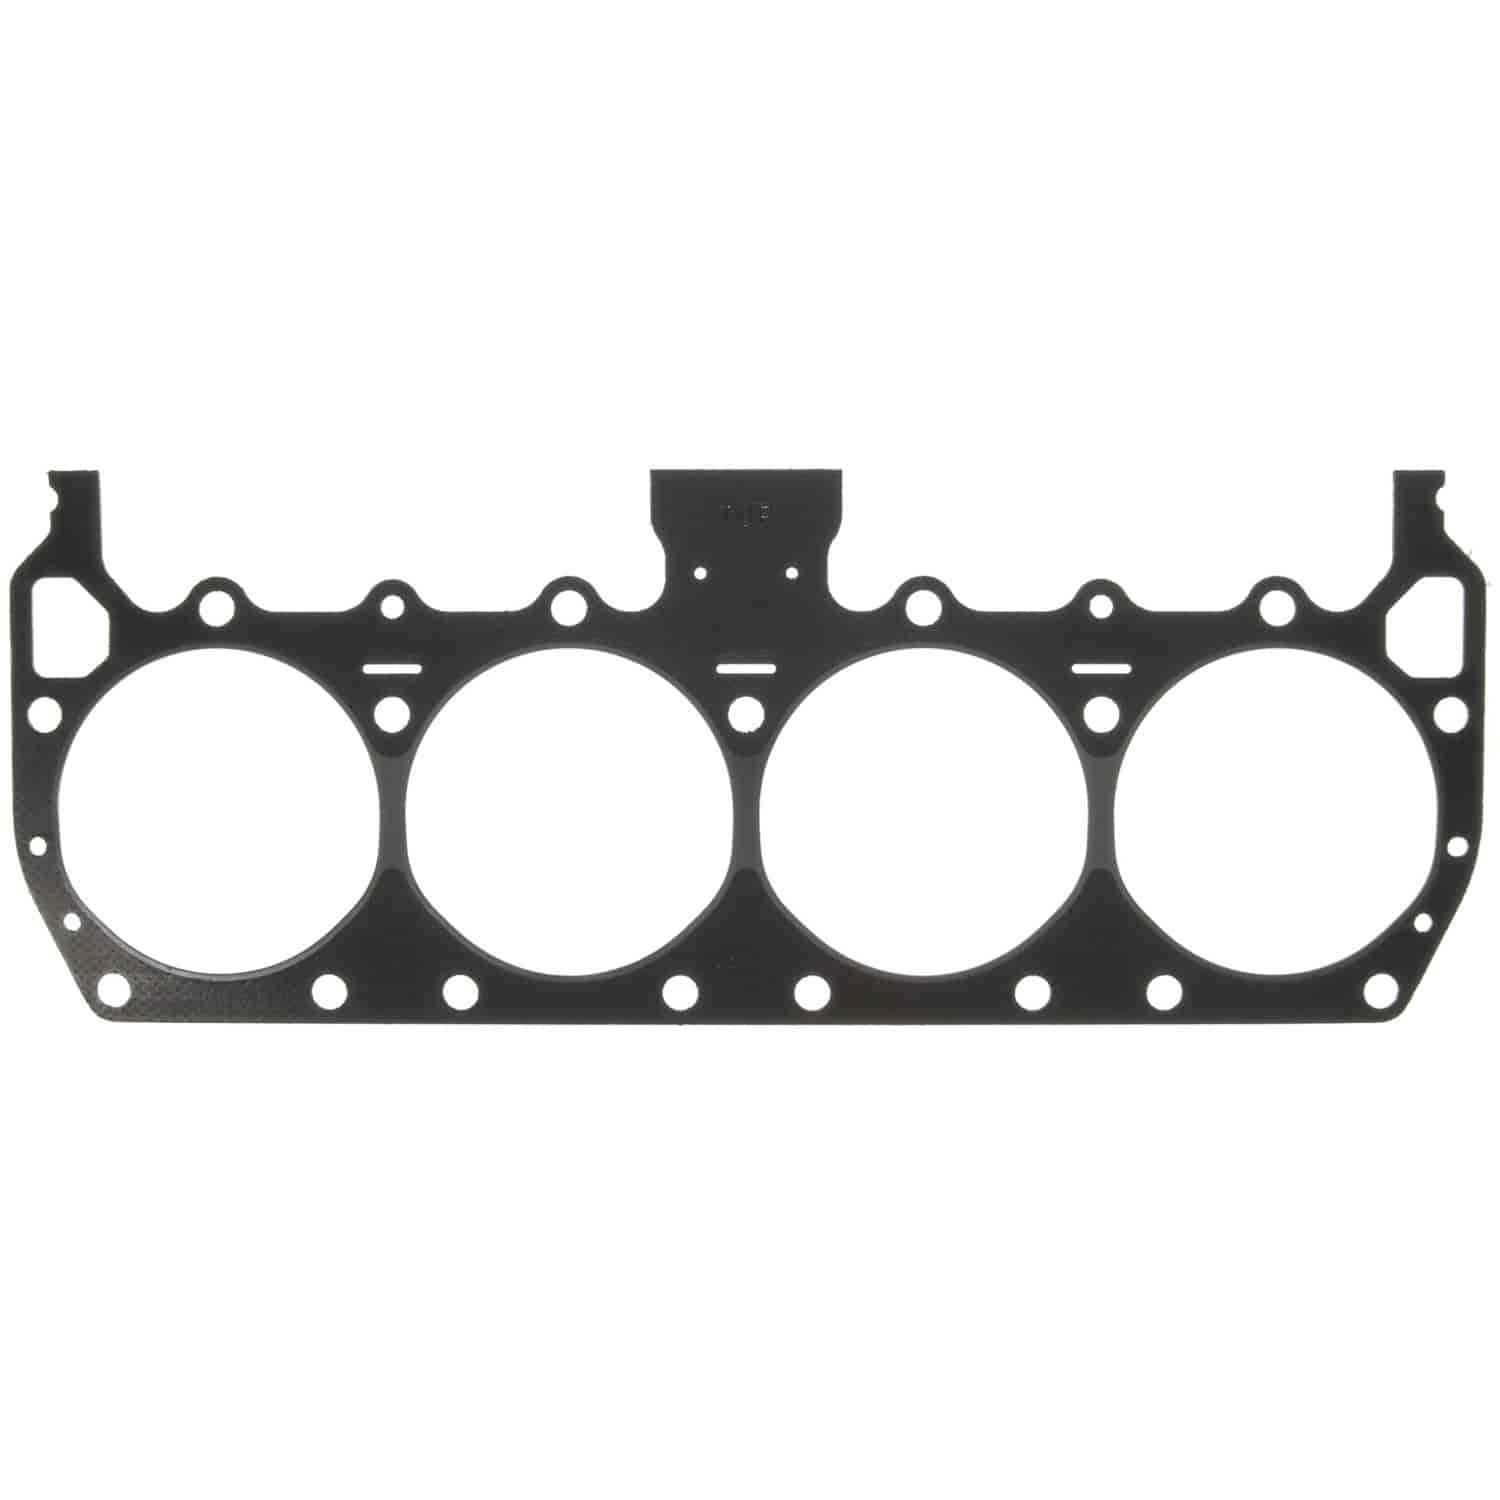 Clevite Mahle Sg Performance Head Gasket